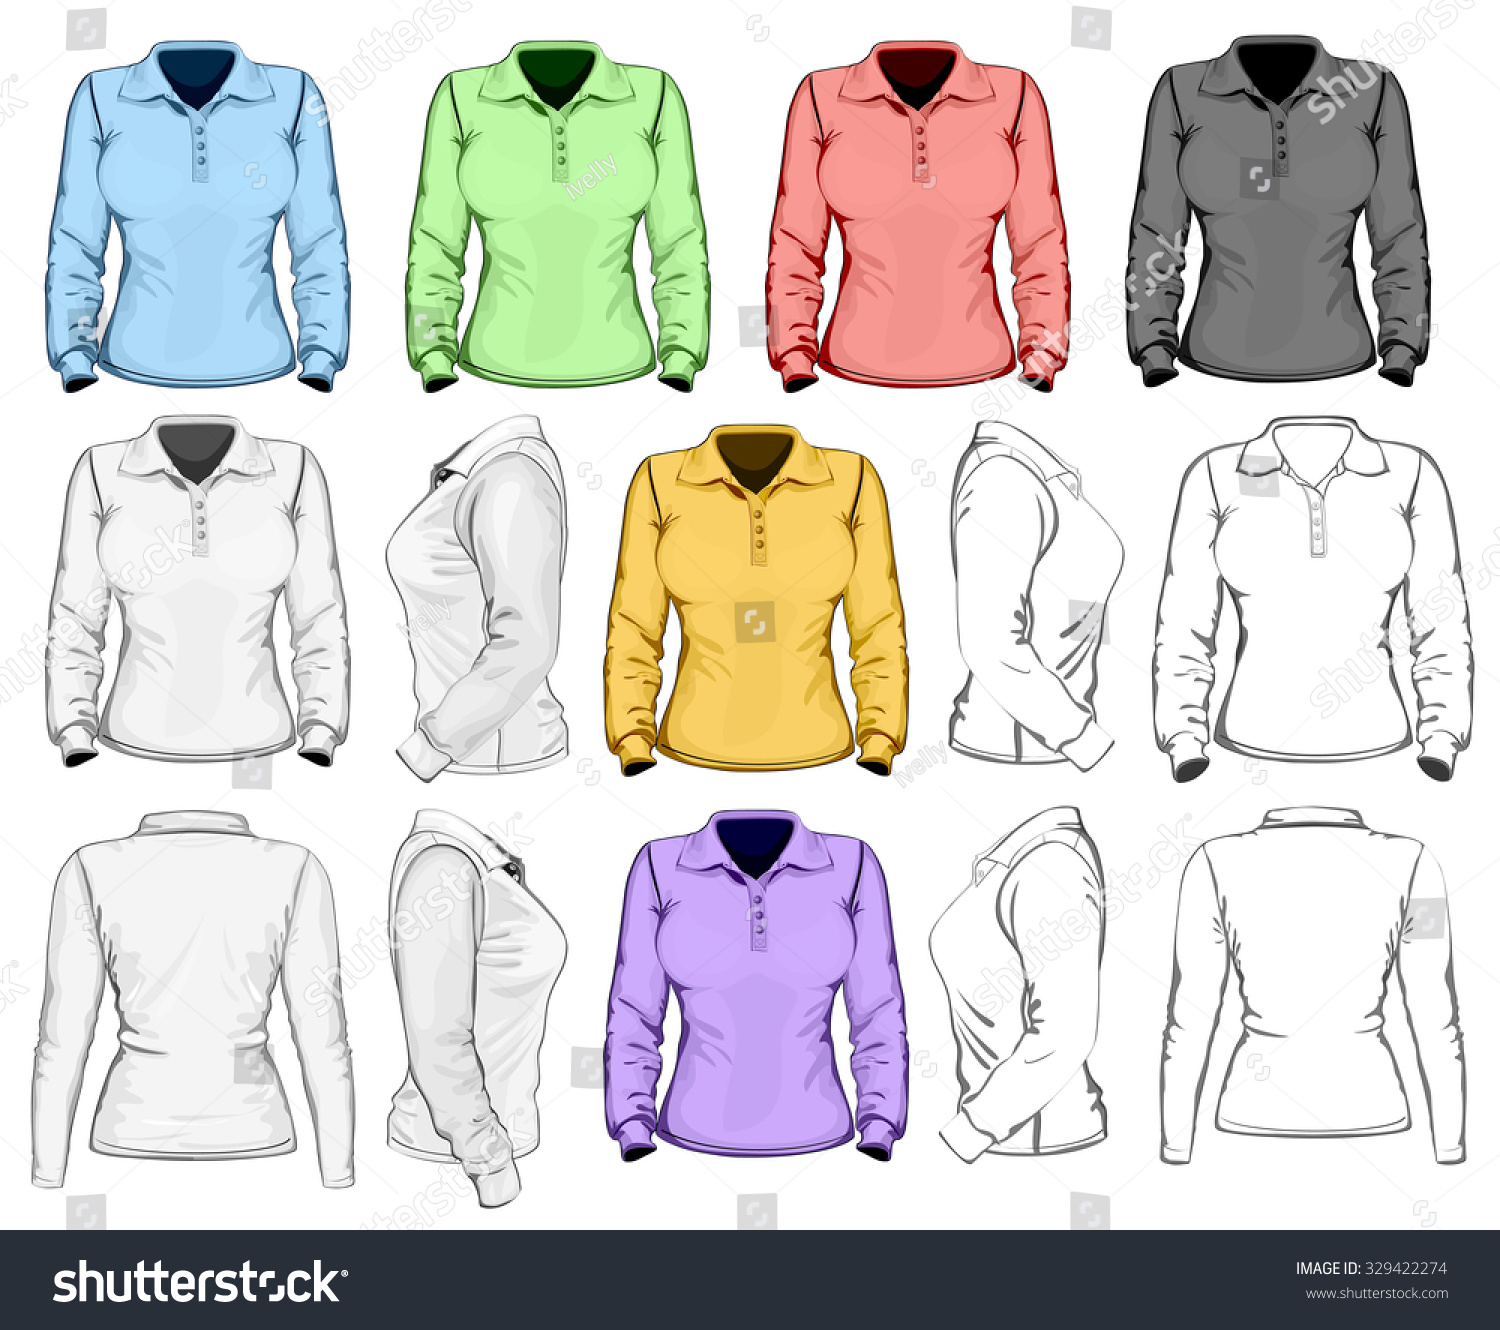 Shirt jacket design - Women S Long Sleeve Polo Shirt Design Template Front Back And Side View